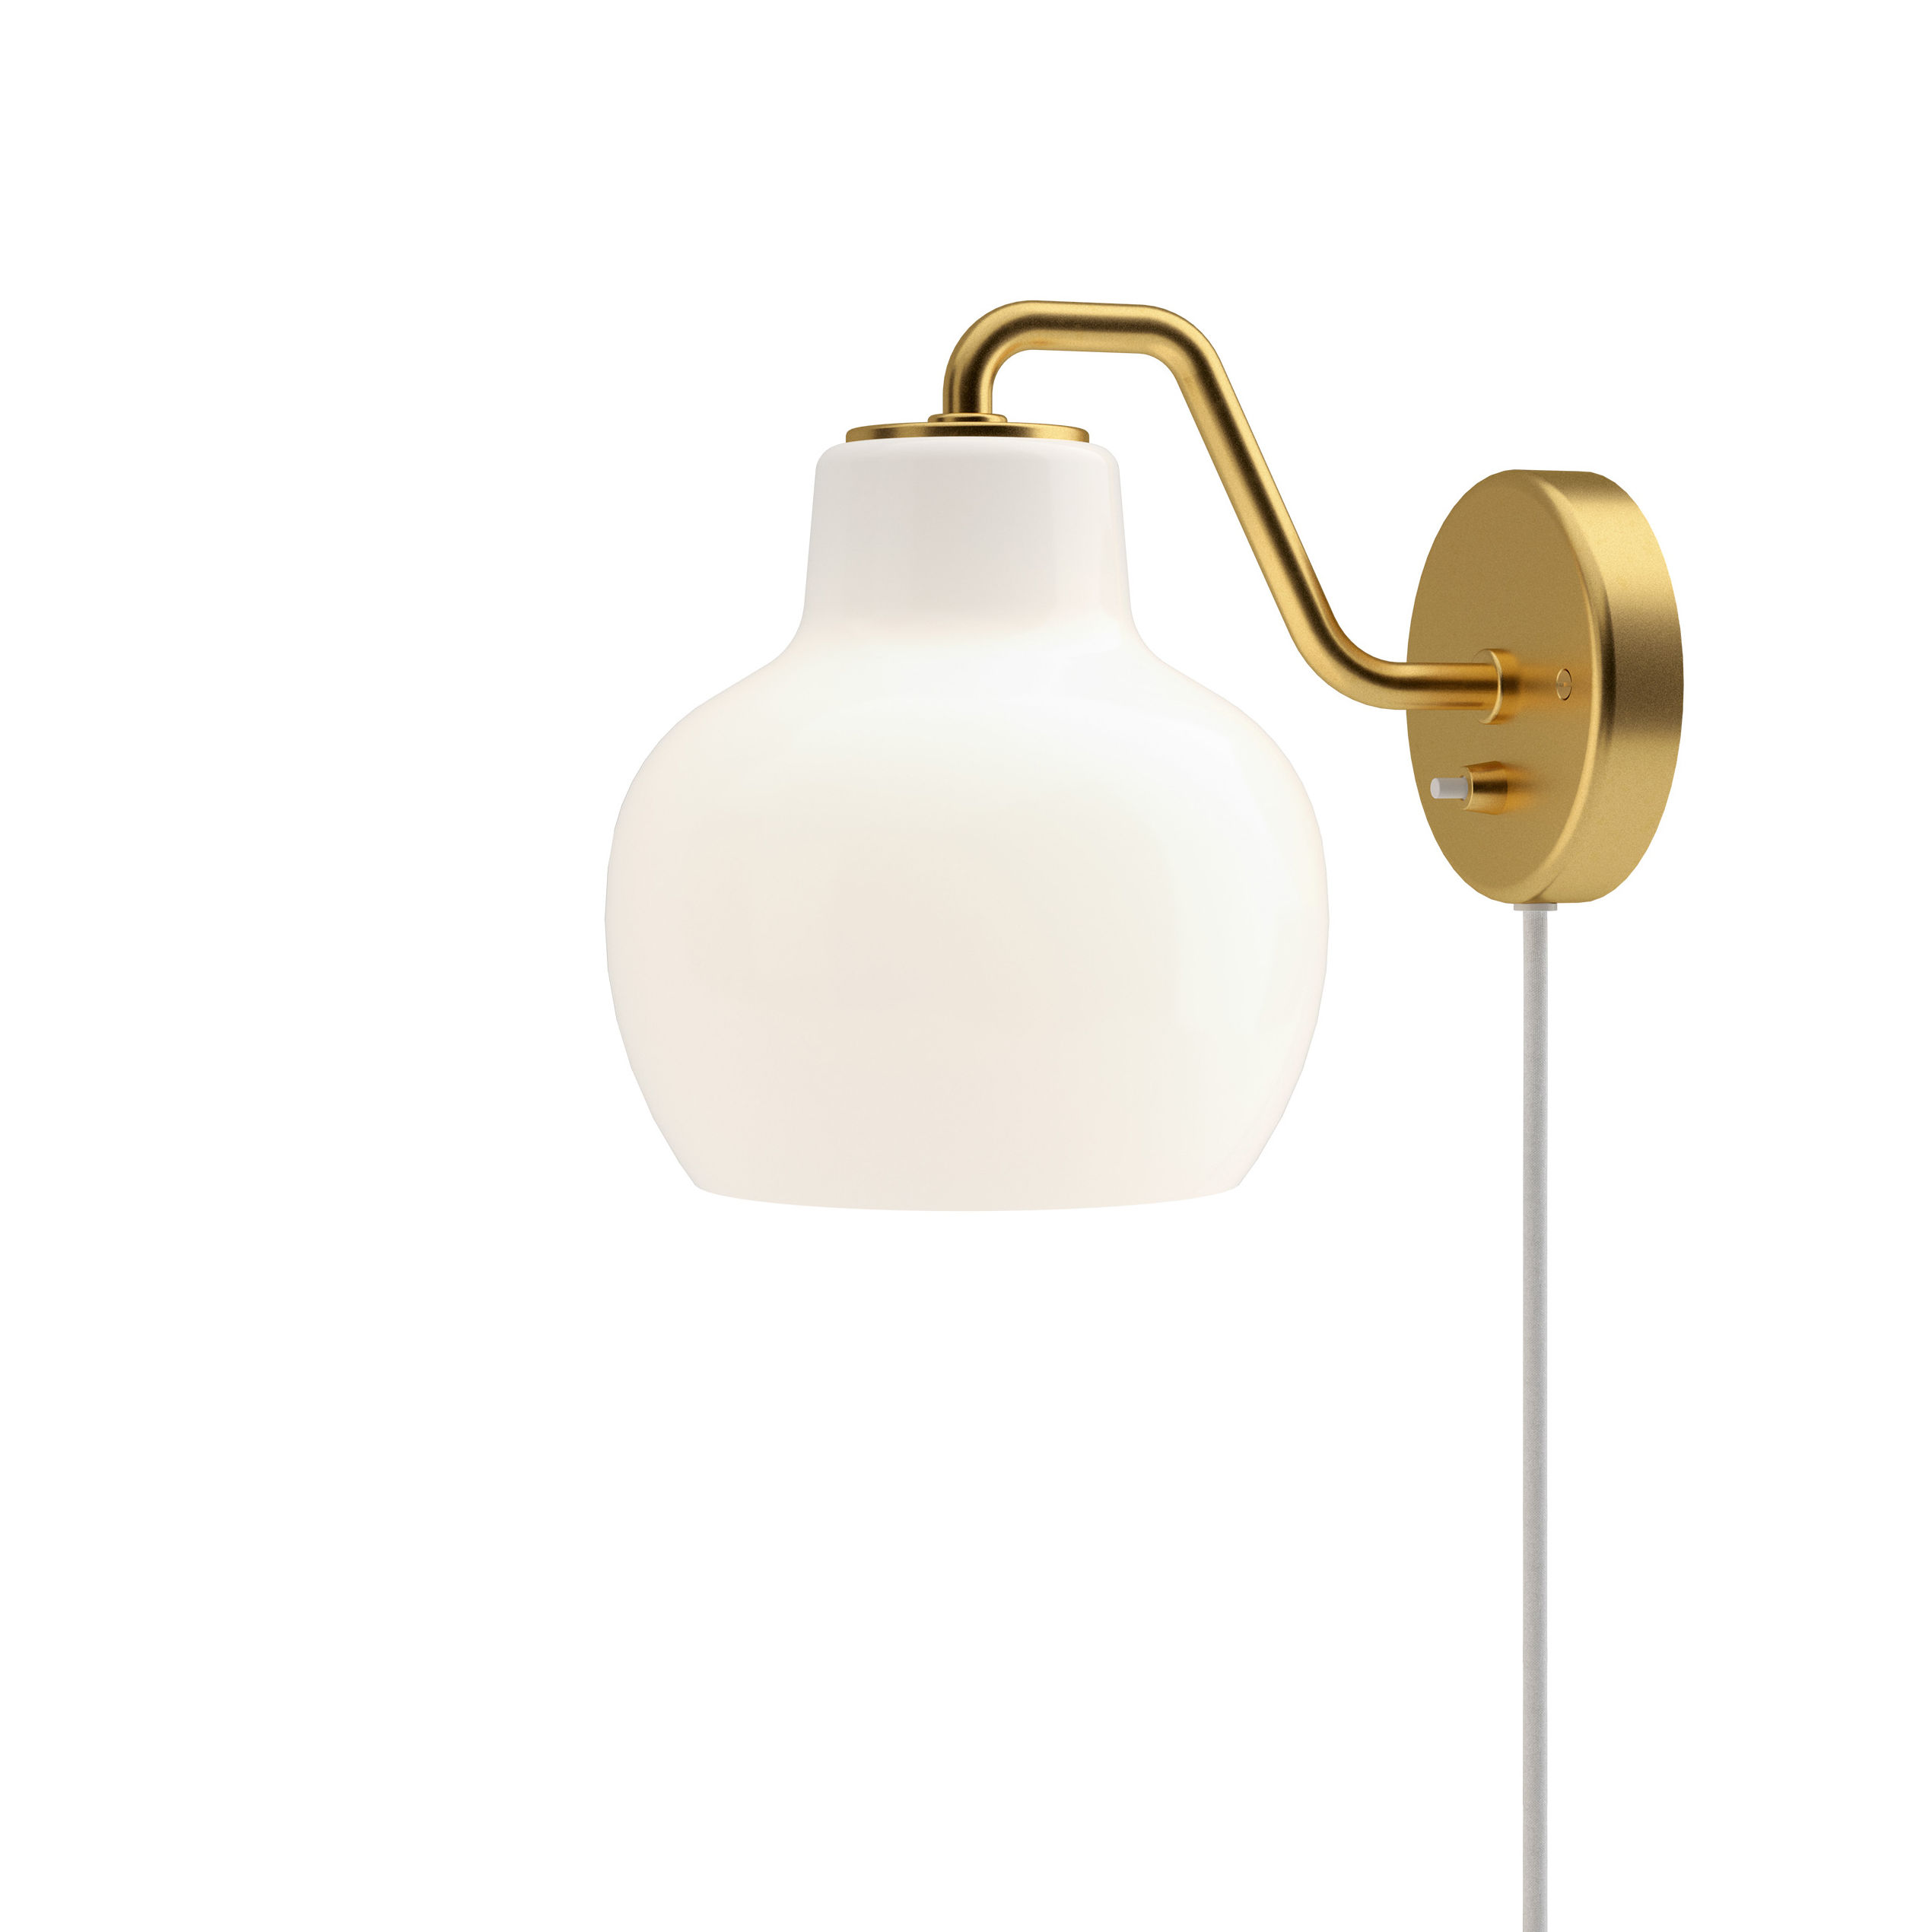 Lighting - Wall Lights - VL Ring Crown Wall light with plug - / 1940 reissue by Louis Poulsen - White / Brass - Brass, Mouth blown glass